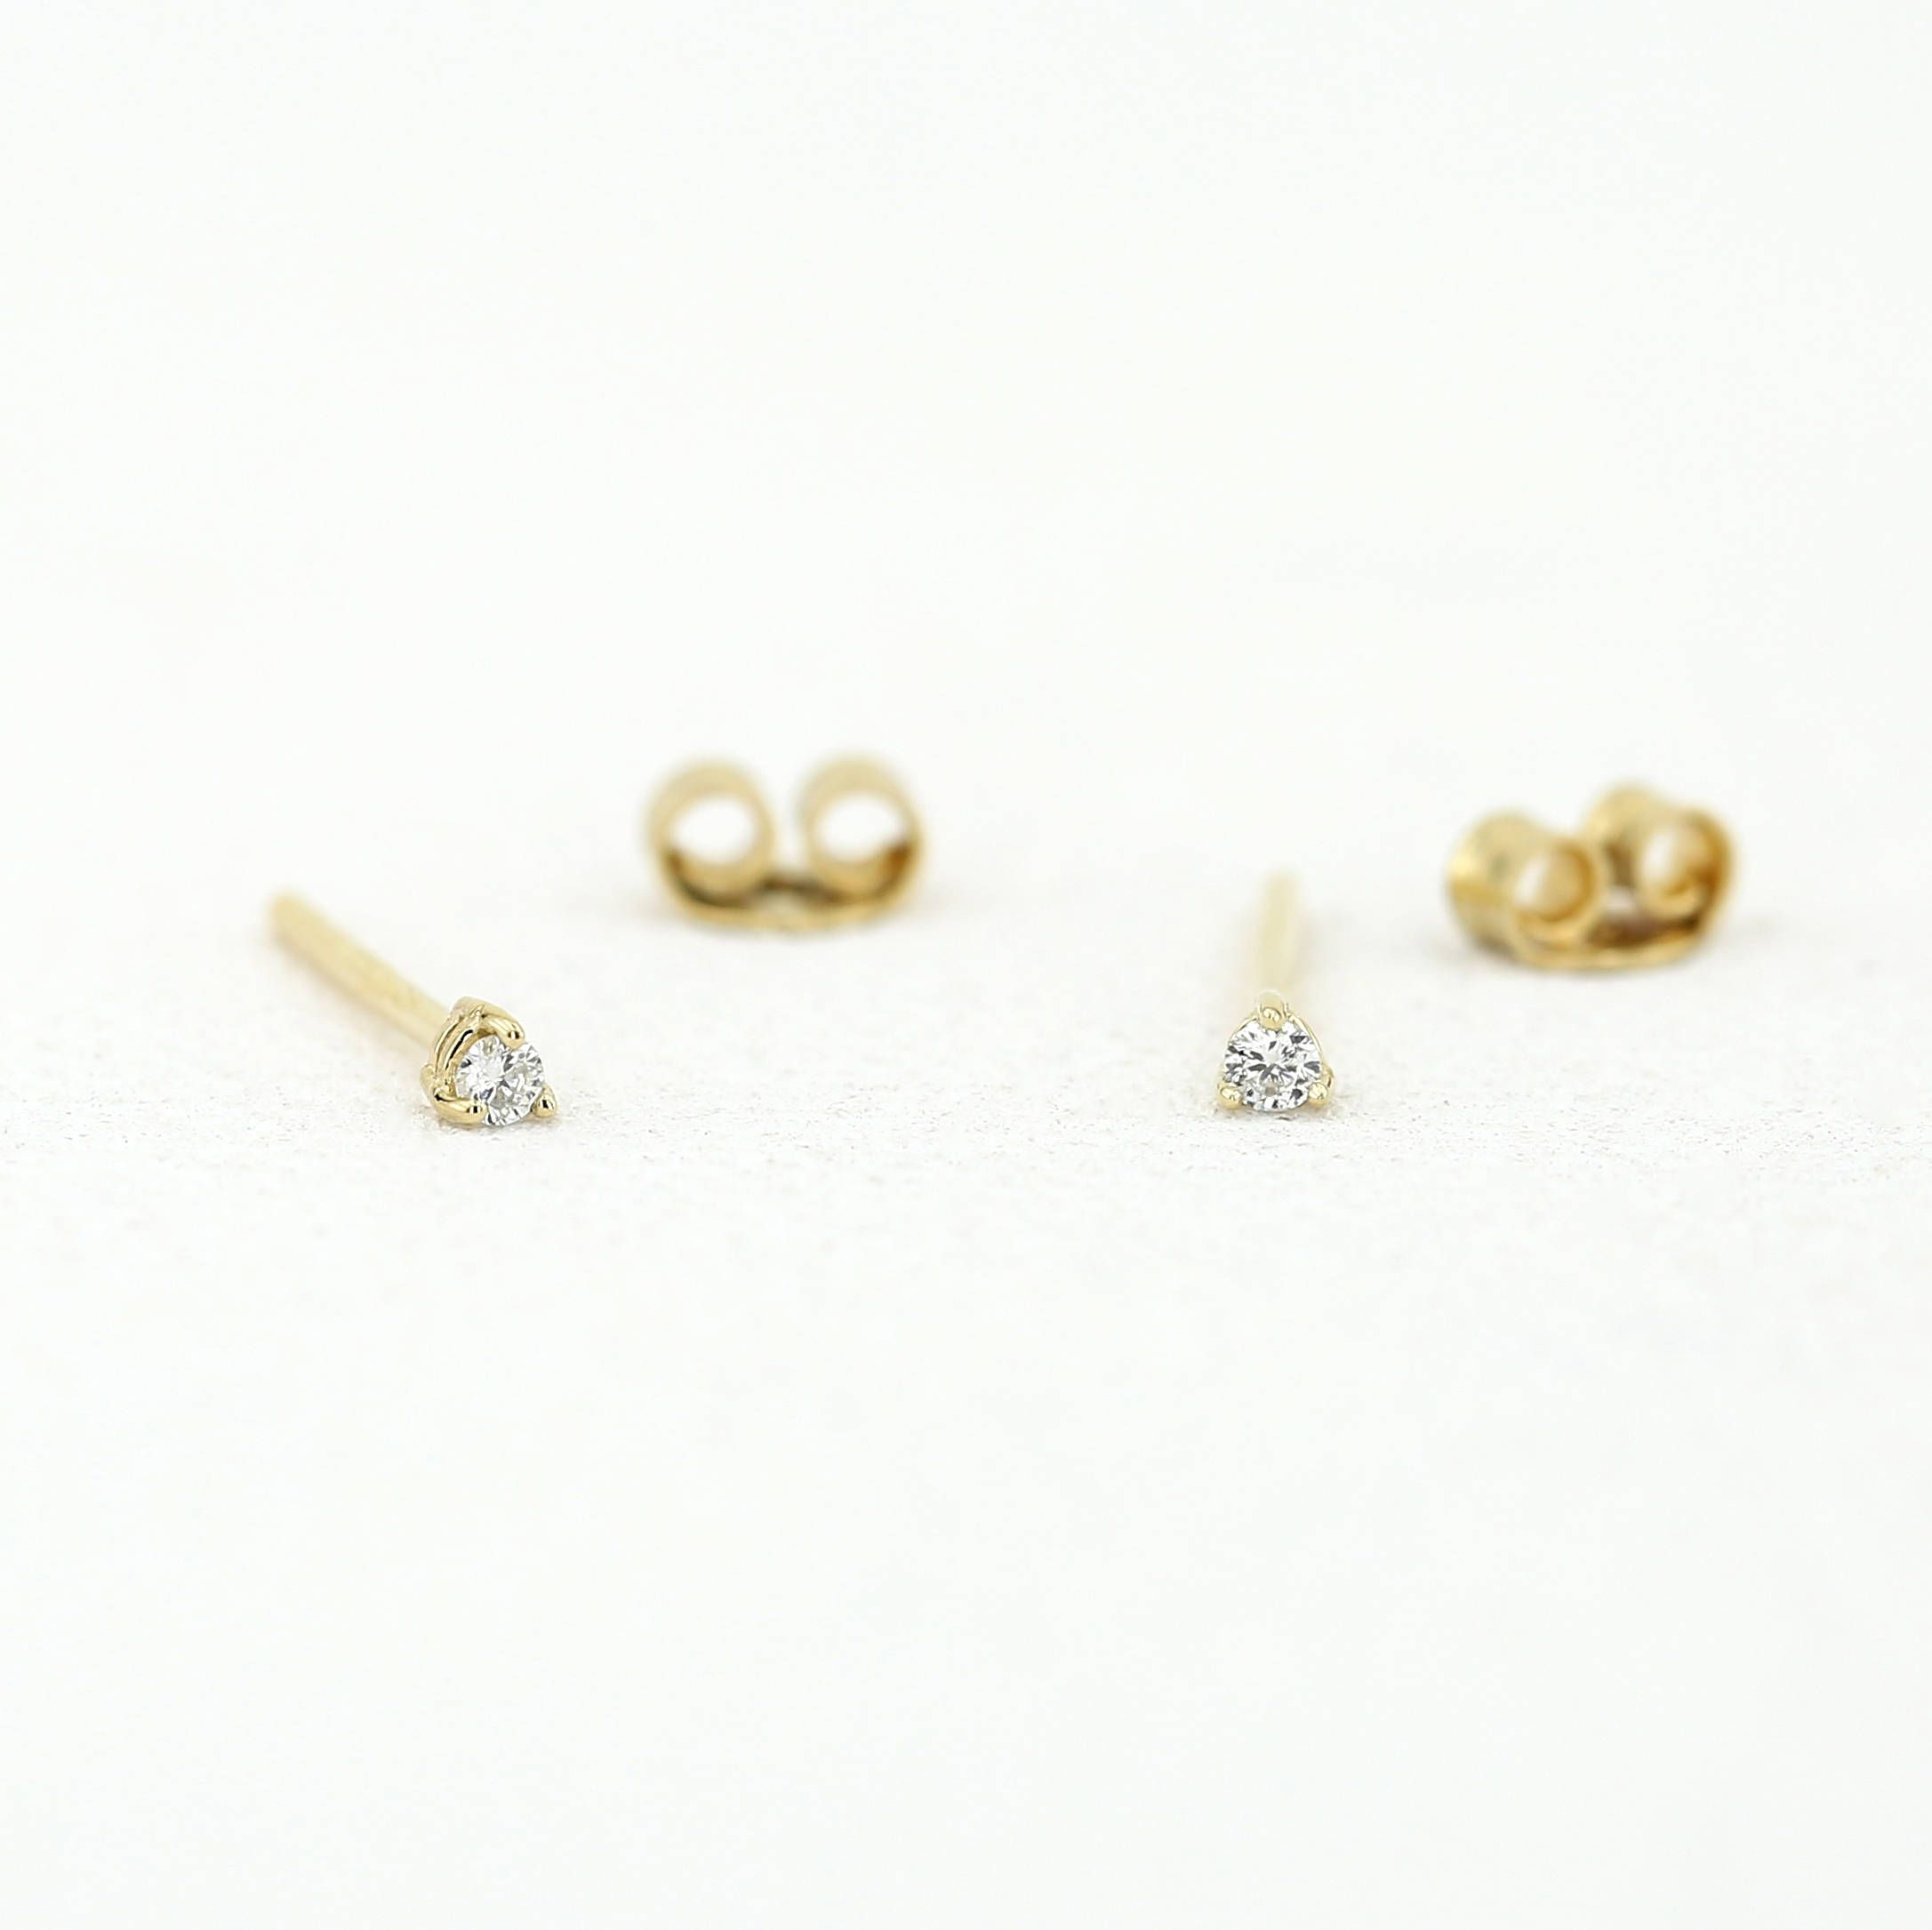 jewelry s clarity in style earrings the brilliant kwiat cts studs h color stud product round prong signature plat diamond